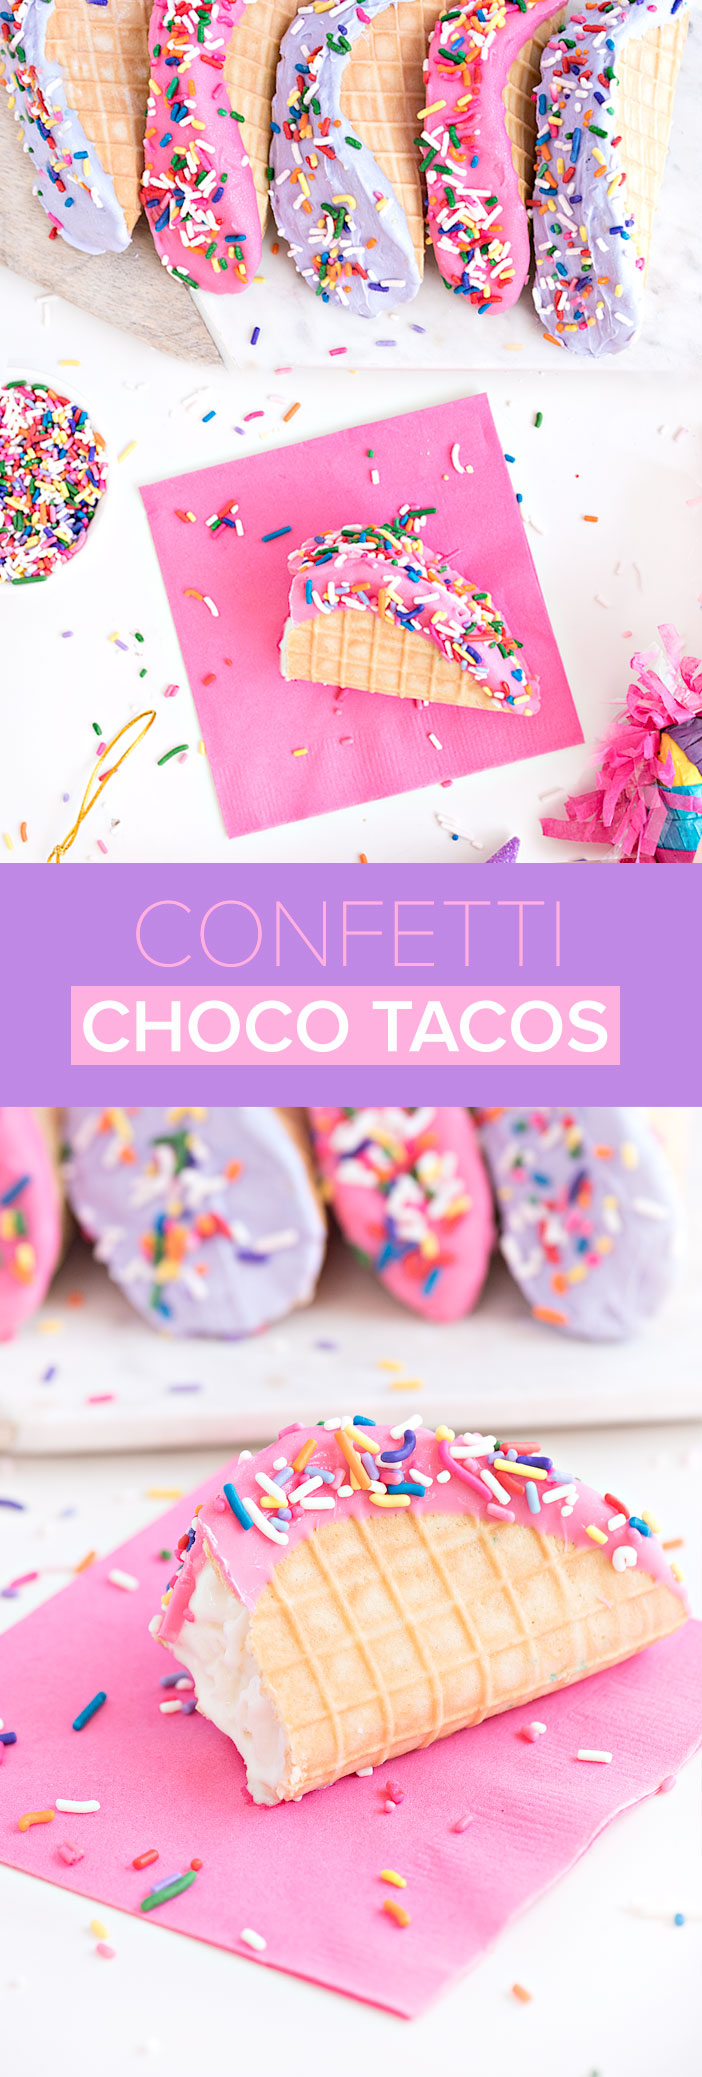 Confetti Choco Tacos perfect for Cinco De Mayo | Sprinkles for Breakfast